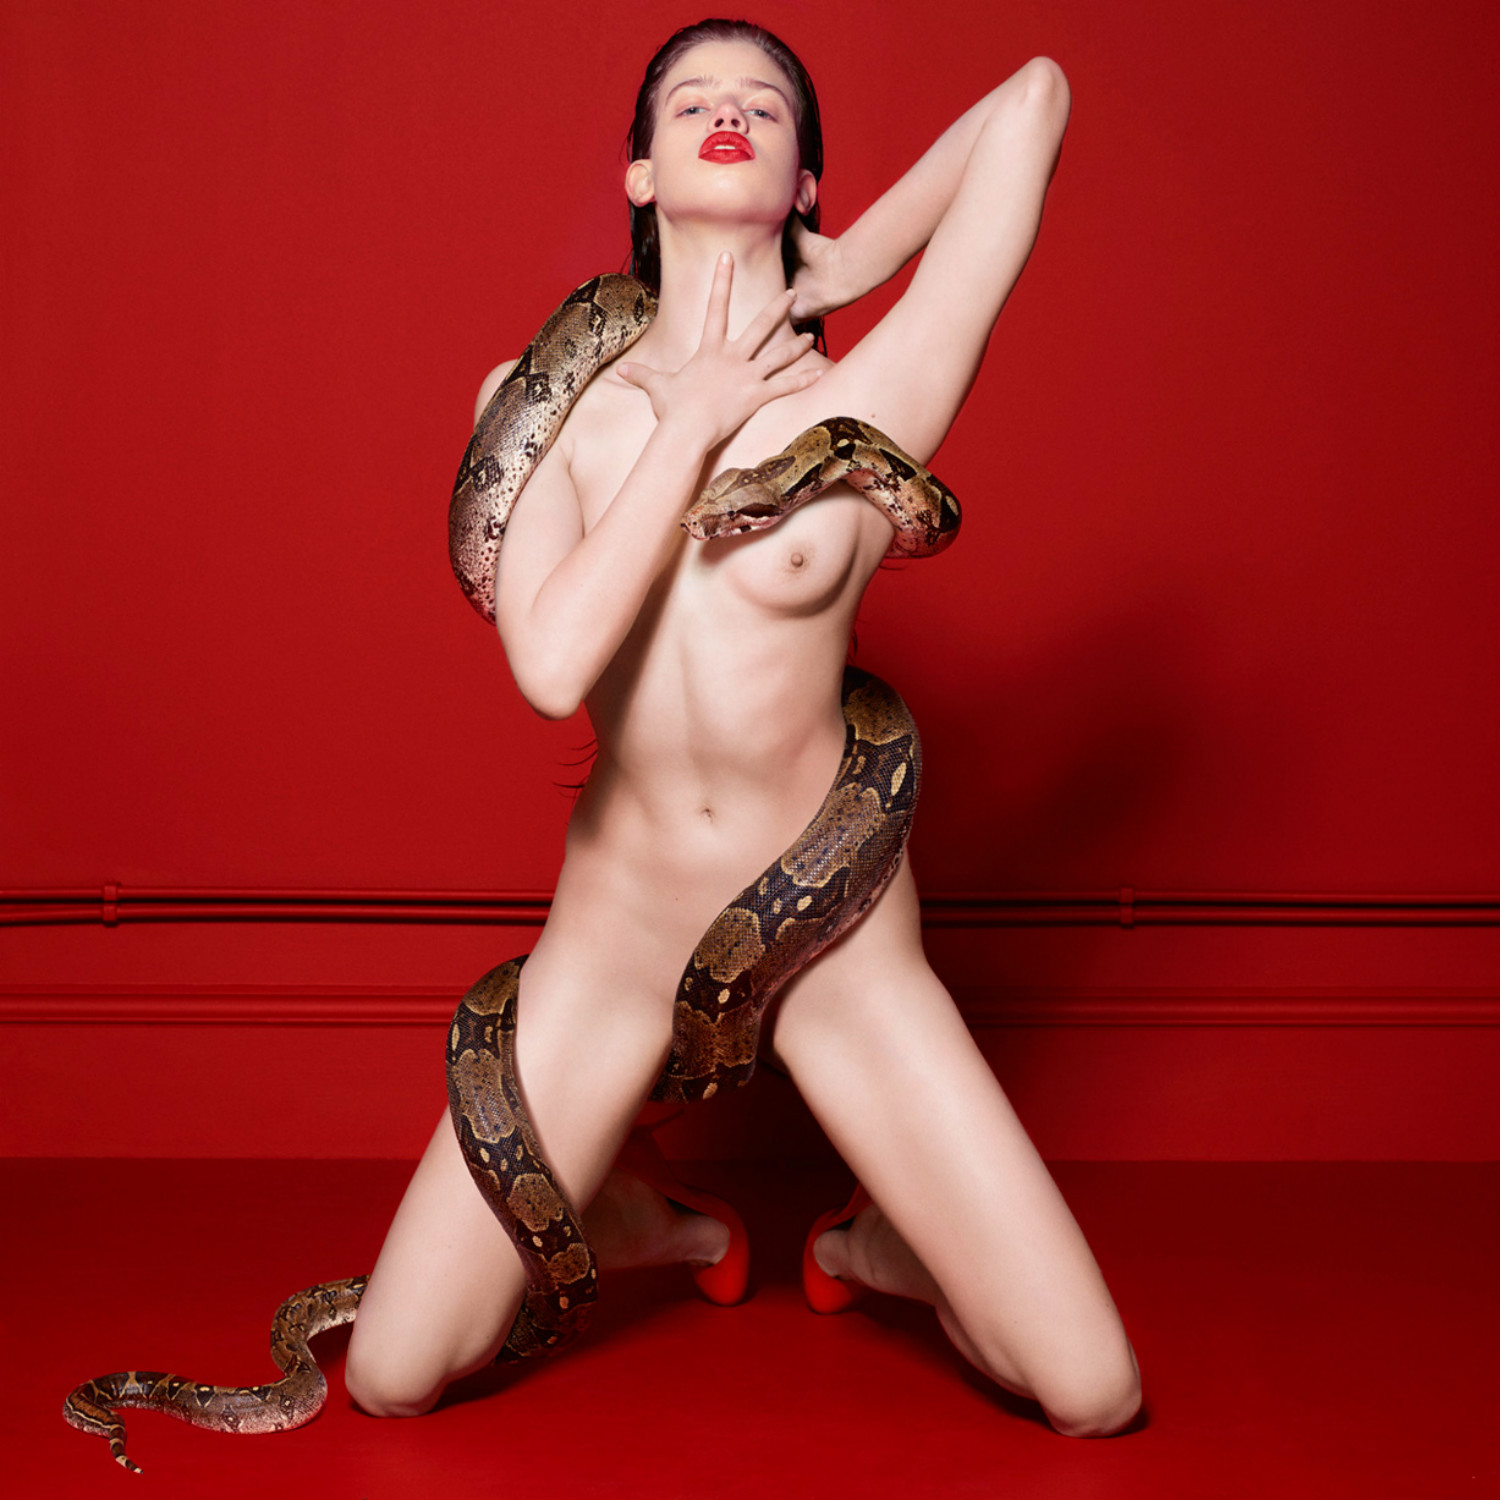 cuneyt akeroglu red room fashion photography erotica mode snake